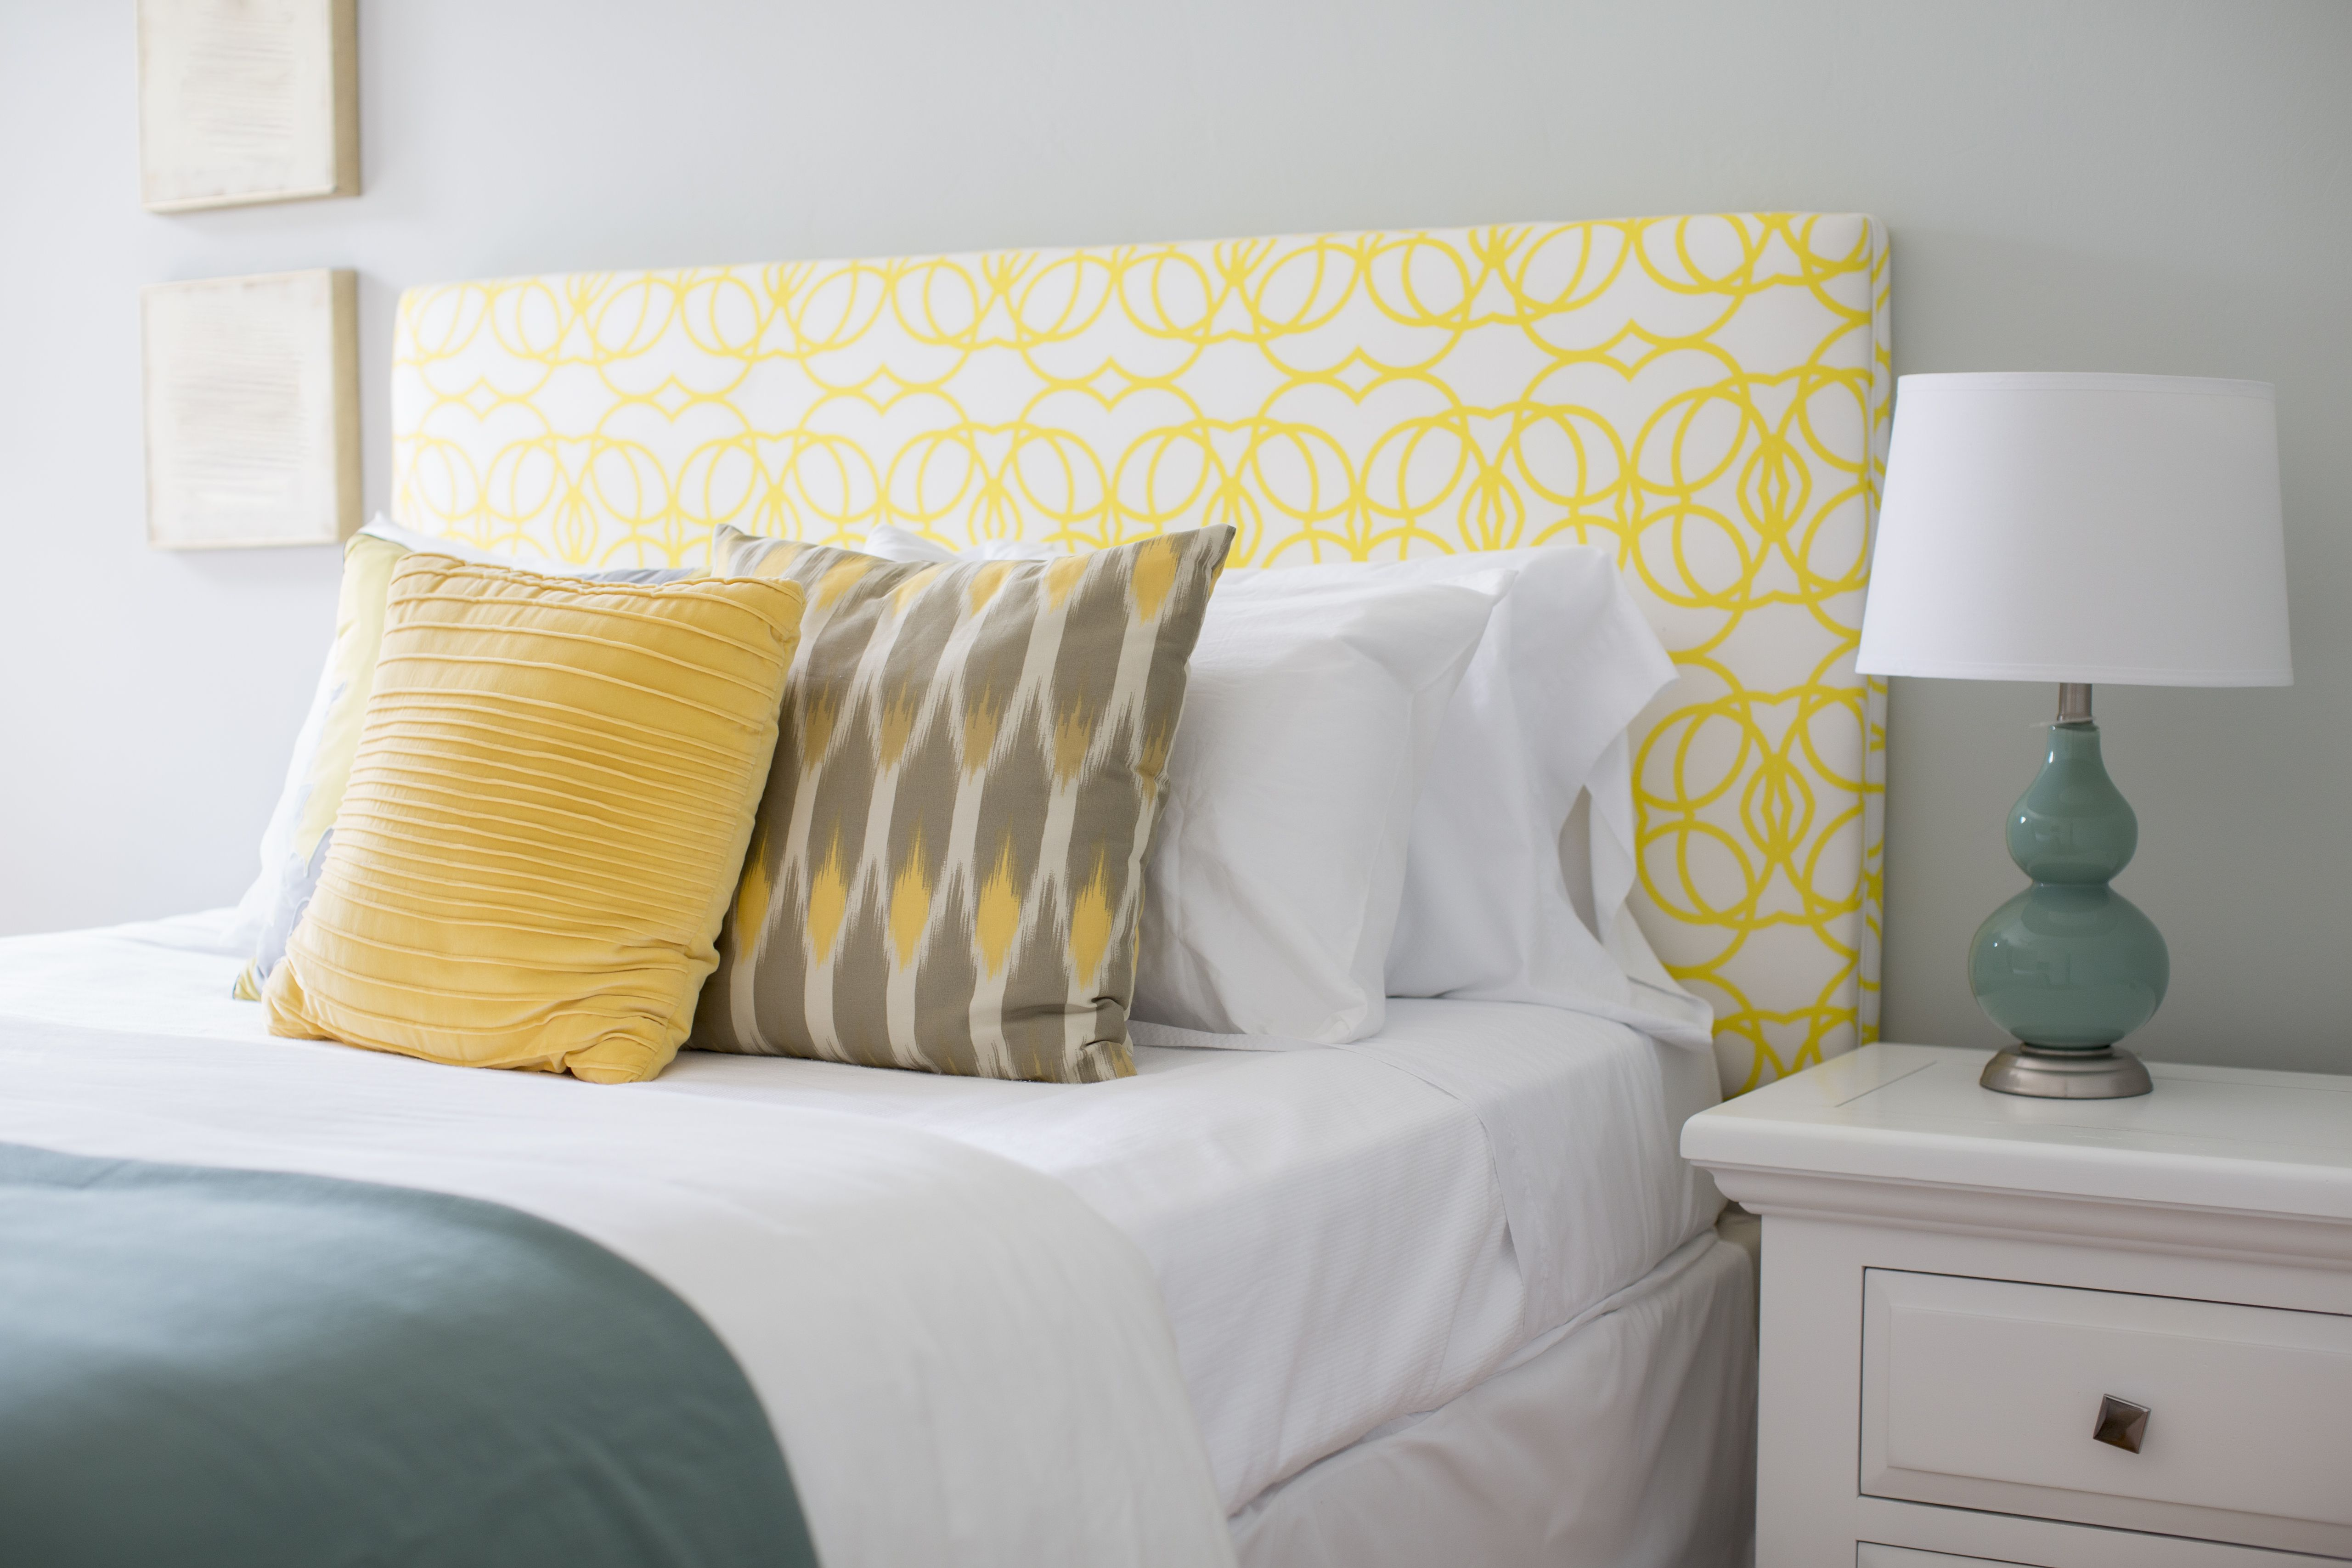 Bed sheet designs pictures - The 7 Best High Thread Count Sheets To Buy In 2017